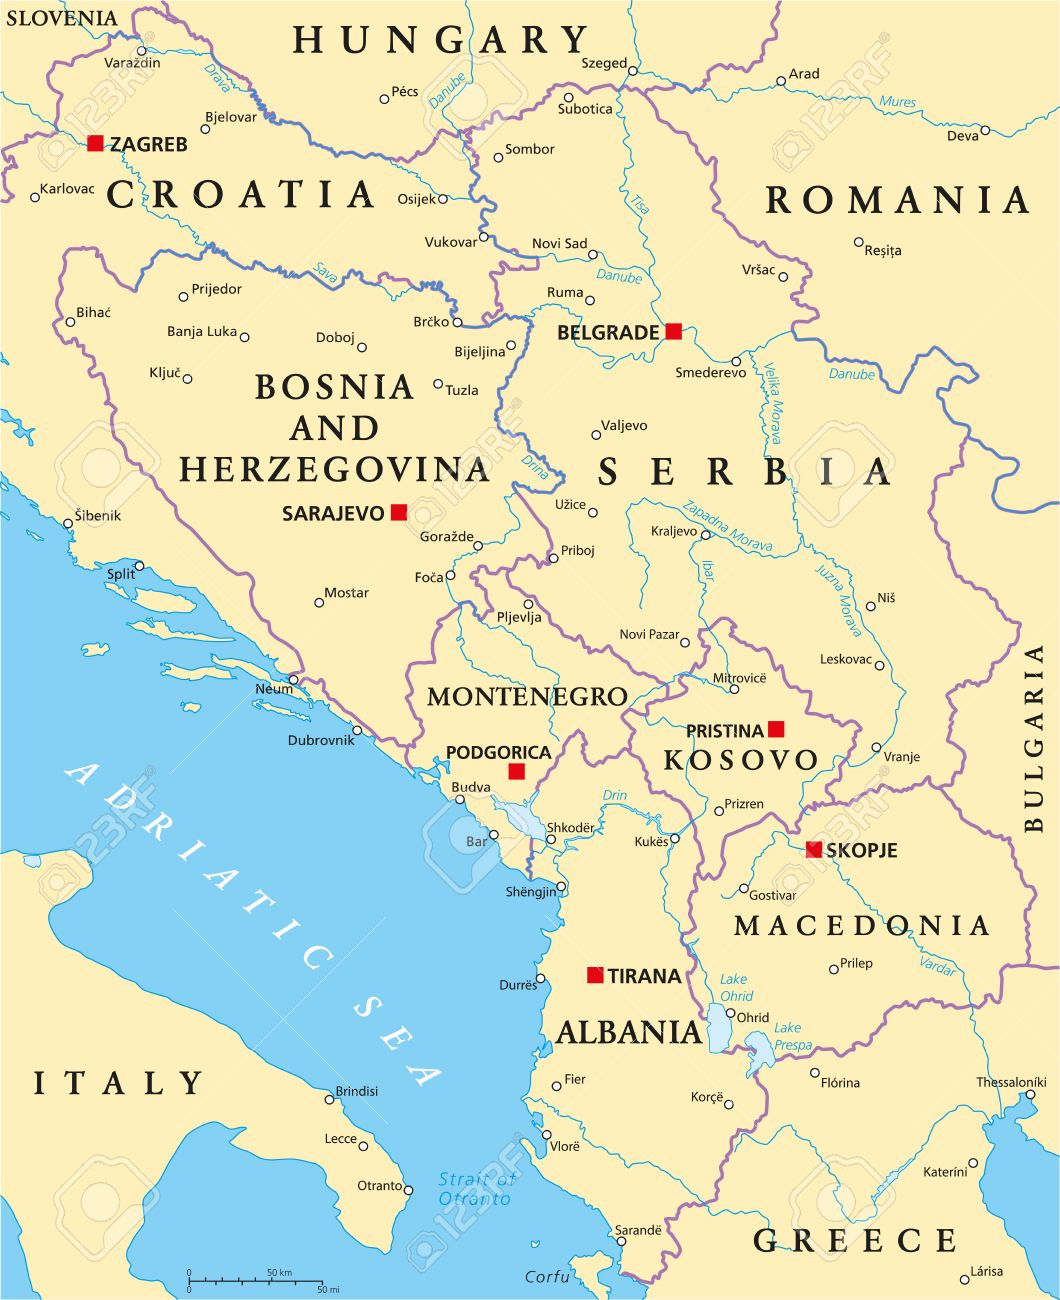 Central Balkan Political Map Formed By Bosnia And Herzegovina - Bosnia and herzegovina map